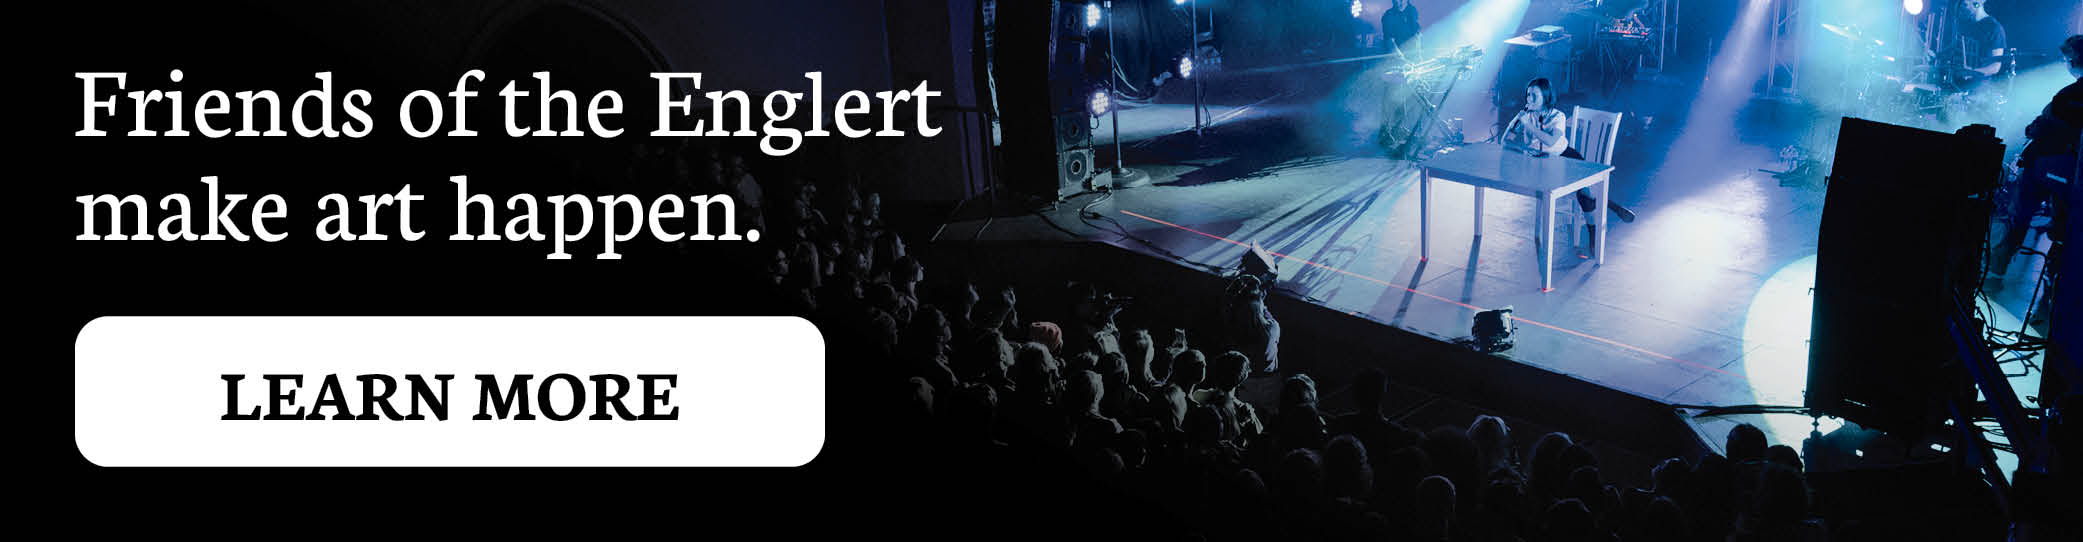 Friends of the Englert Banner Ad